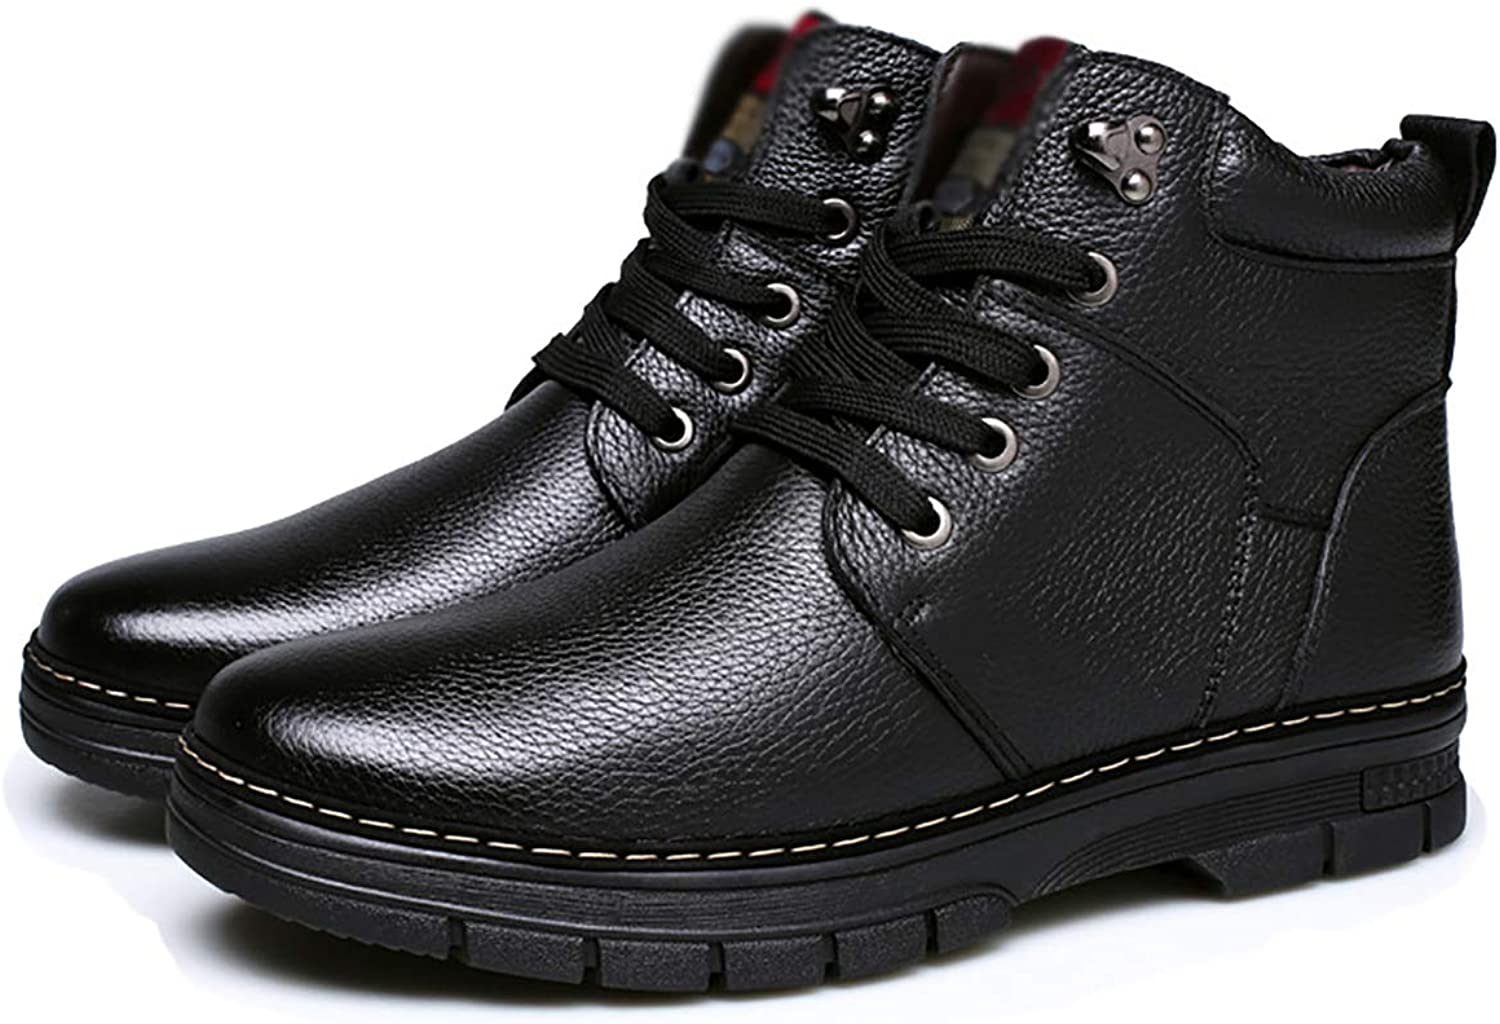 Fad-J Winter men's leather snow boots, warm cotton shoes boots middle-aged father shoes,Black,43